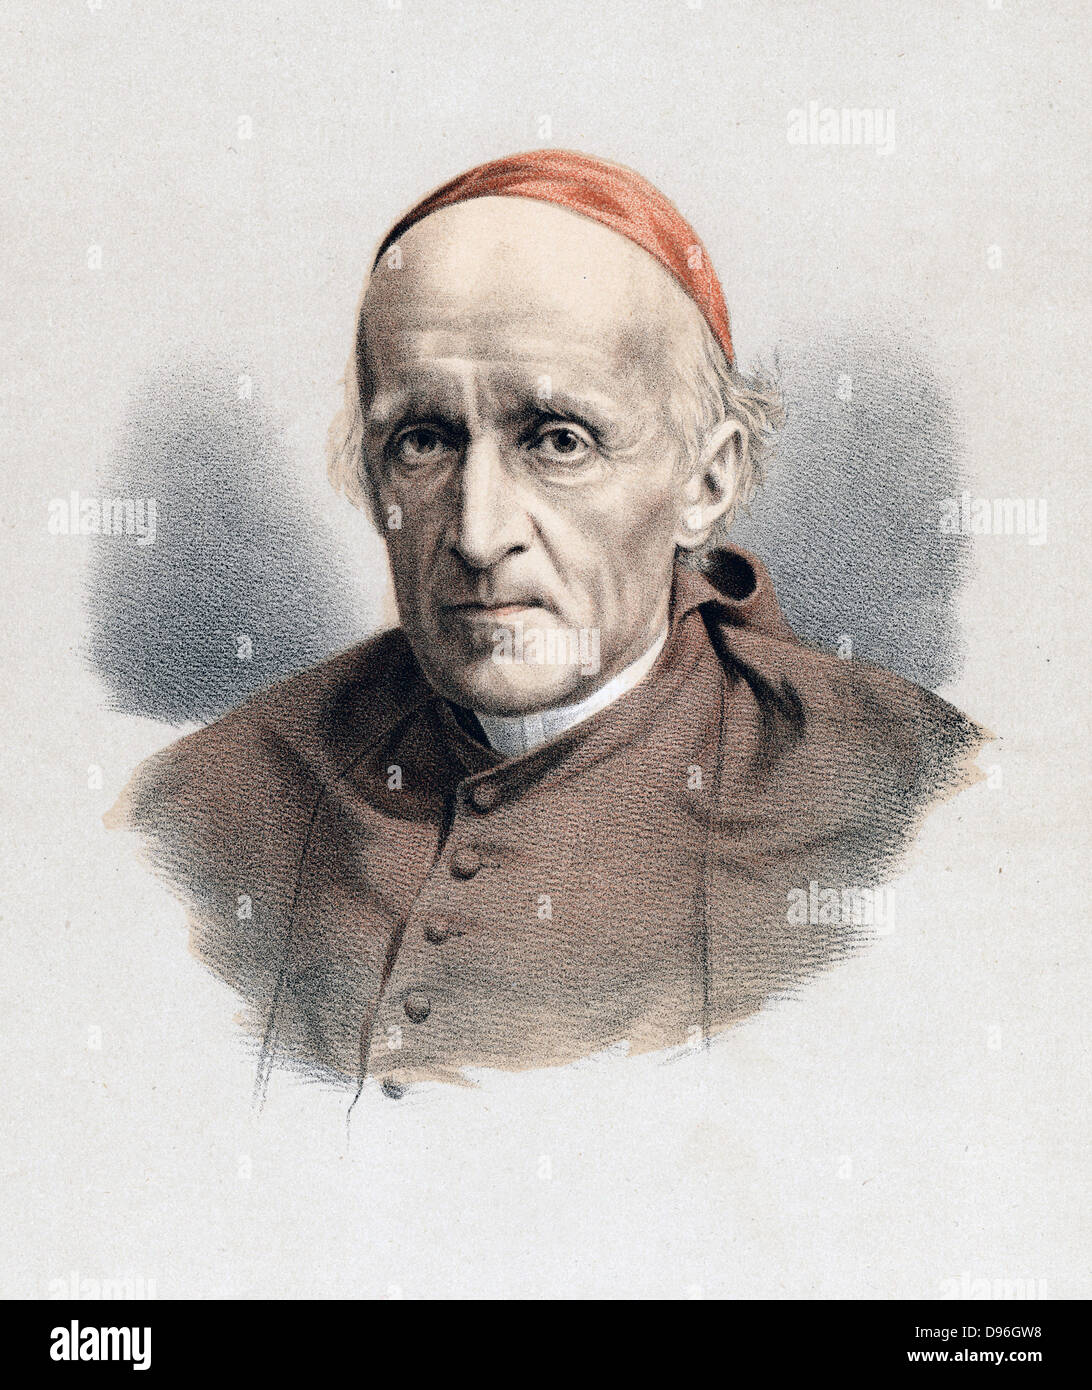 henry edward manning english r catholic prelate henry edward manning 1809 1892 english r catholic prelate c1880 after graduating from oxford manning was ordained as